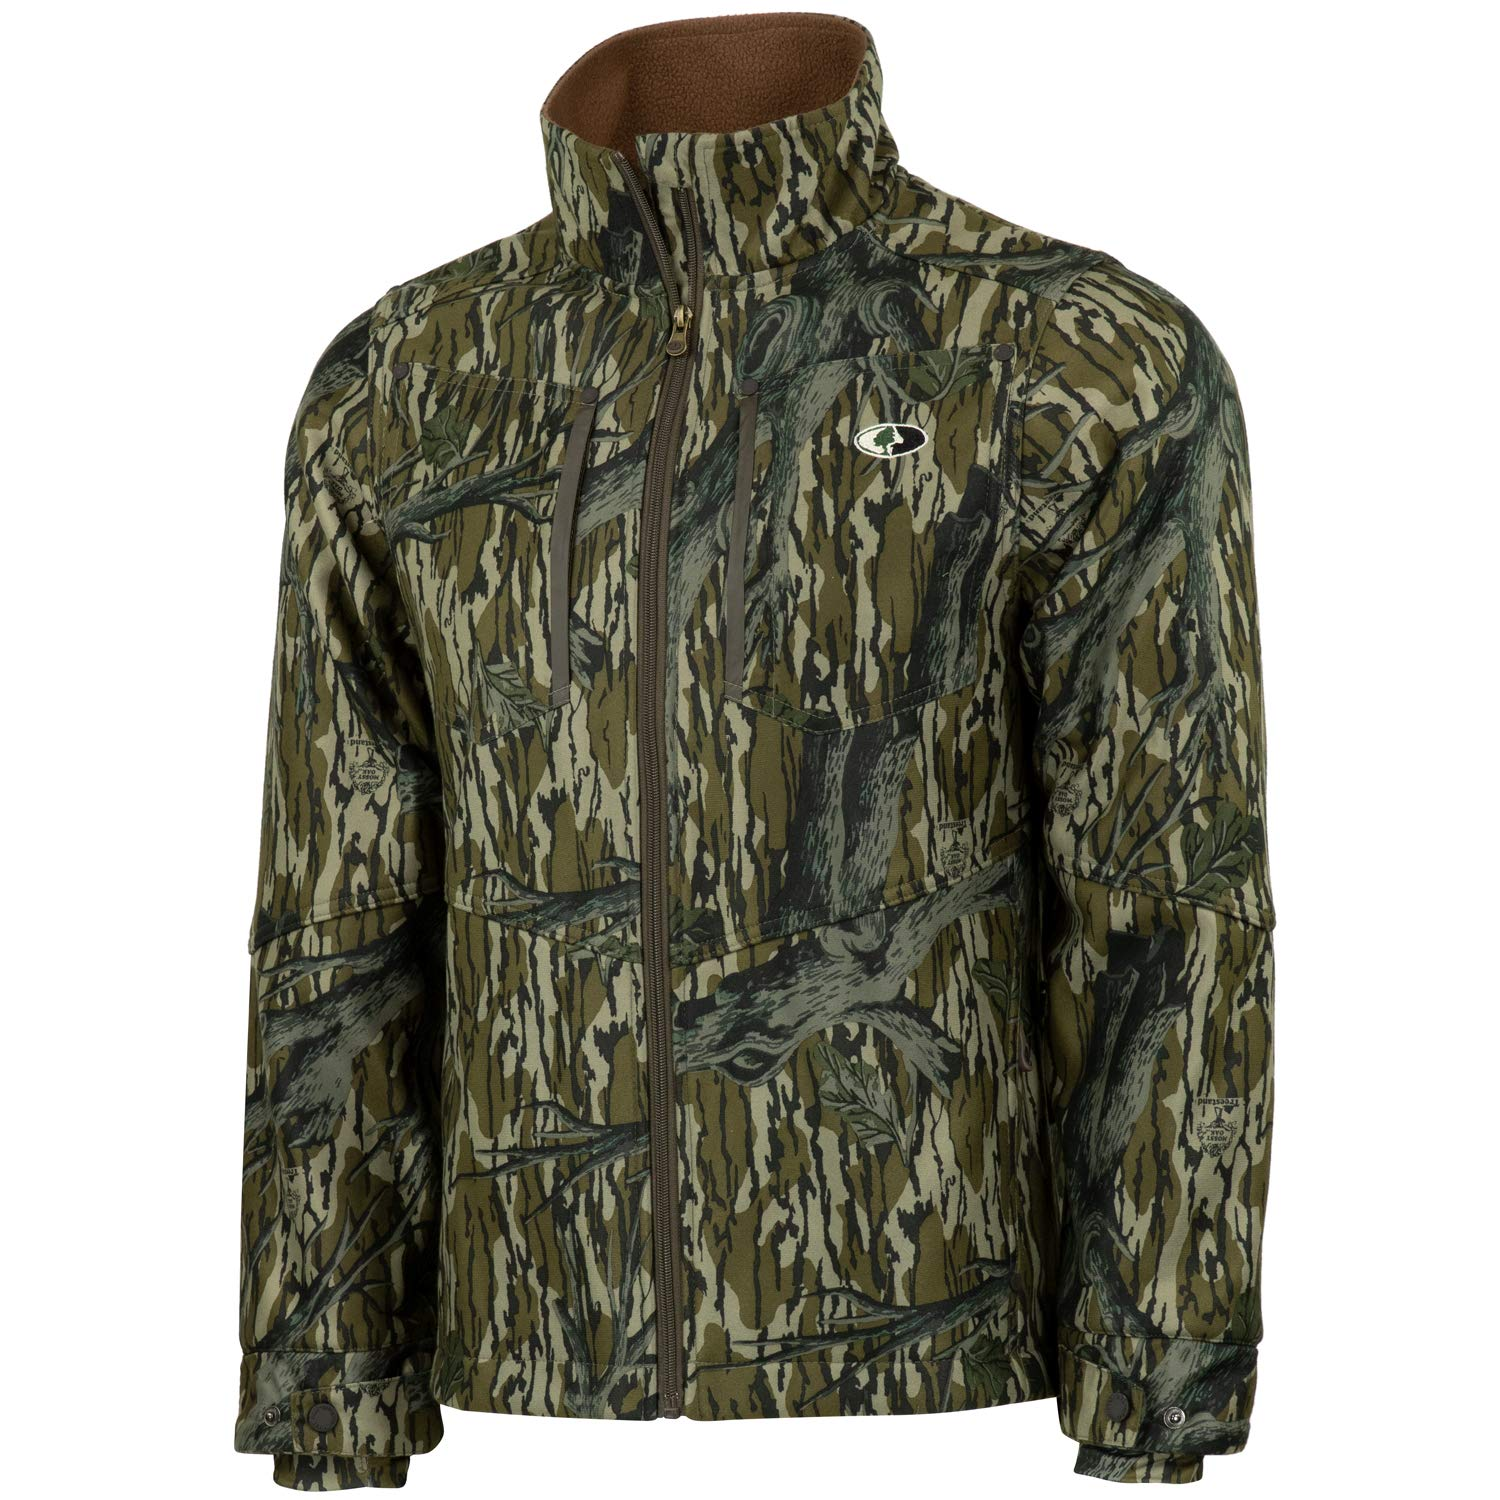 Mossy Oak Men's Camo Sherpa 2.0 Fleece Lined Hunting Jacket, Original Treestand, 3X-Large by Mossy Oak